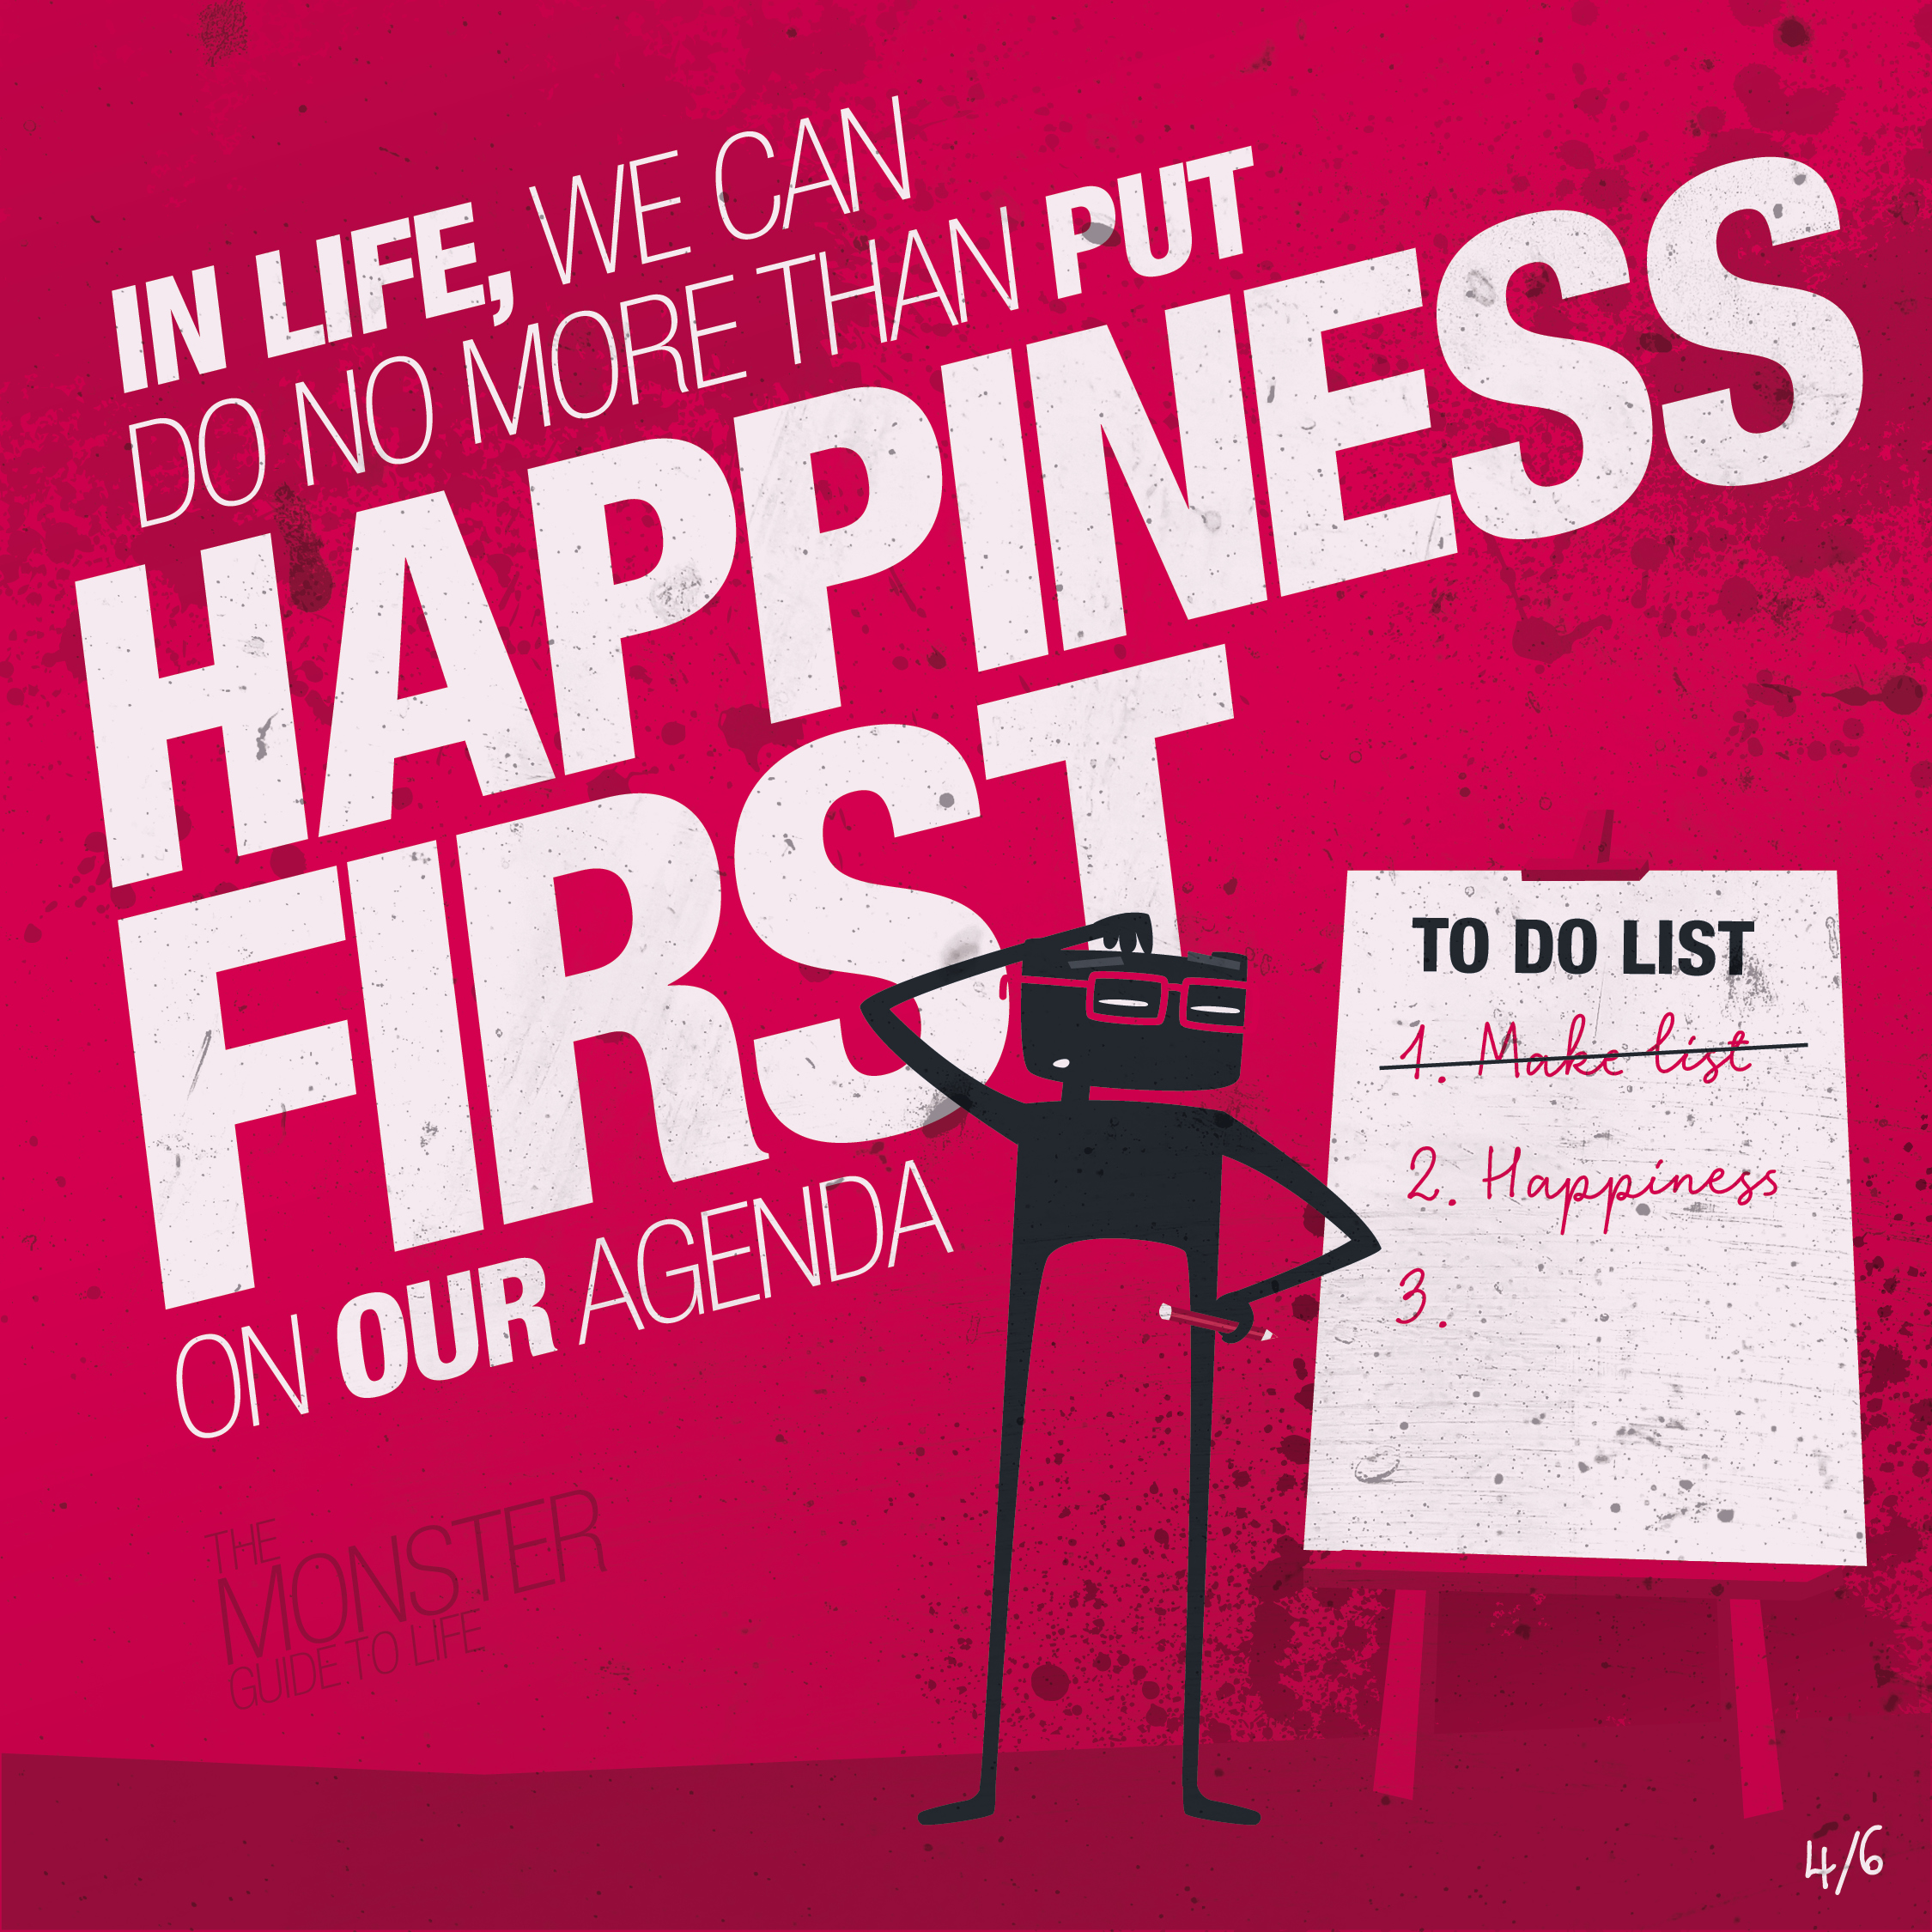 In life, we can do no more than put happiness first on our agenda